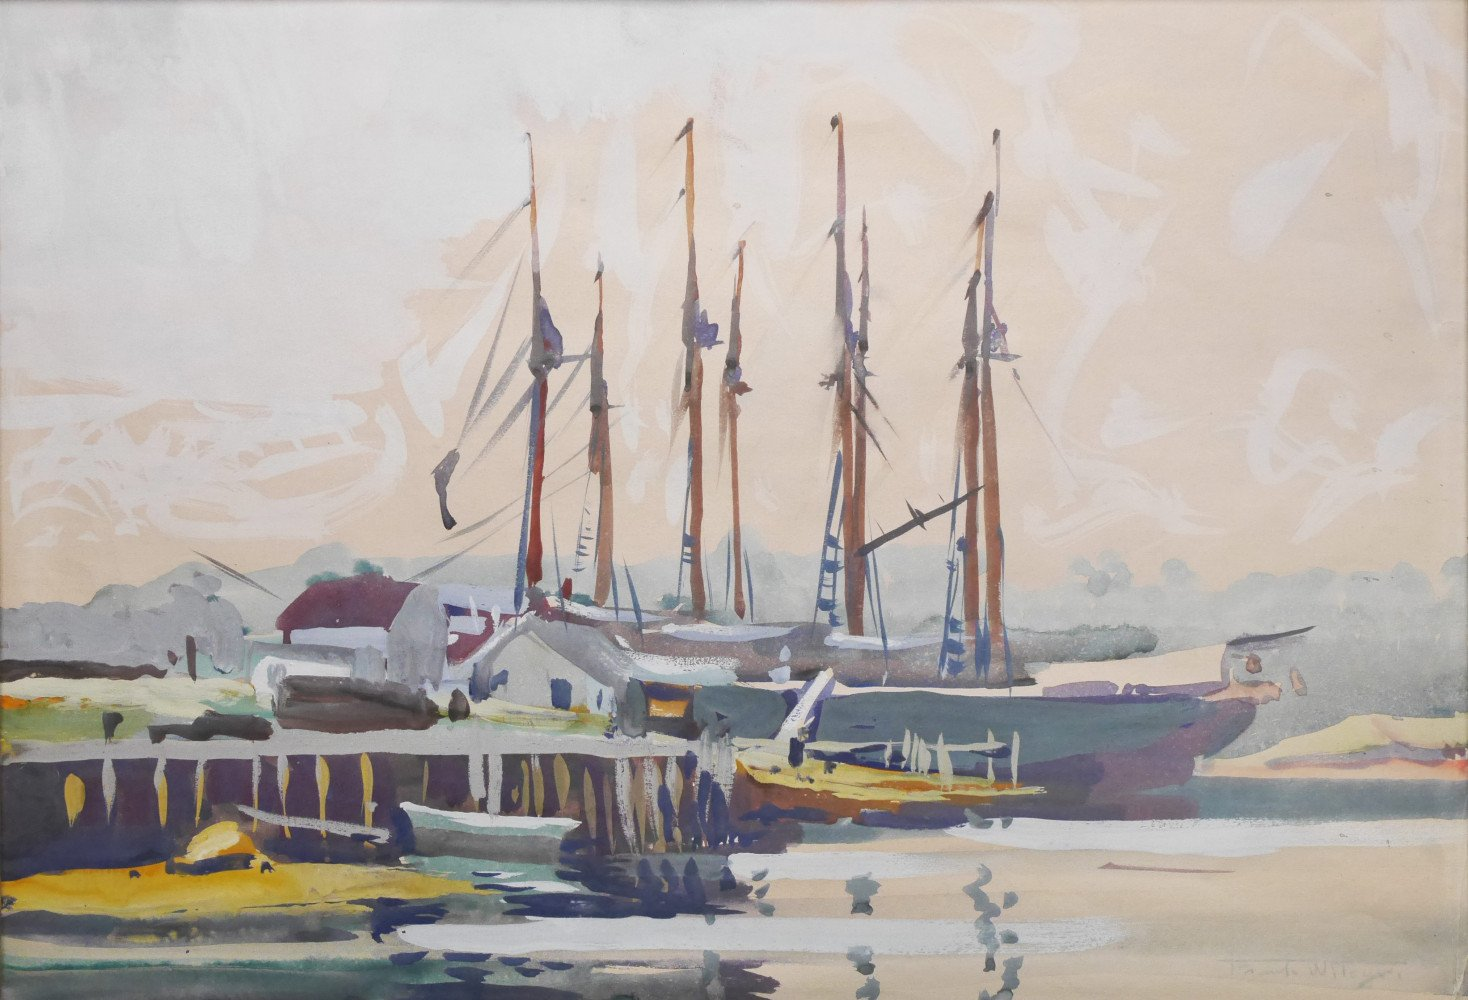 Schooner, Boothbay Harbor, Maine by Frank Nelson Wilcox